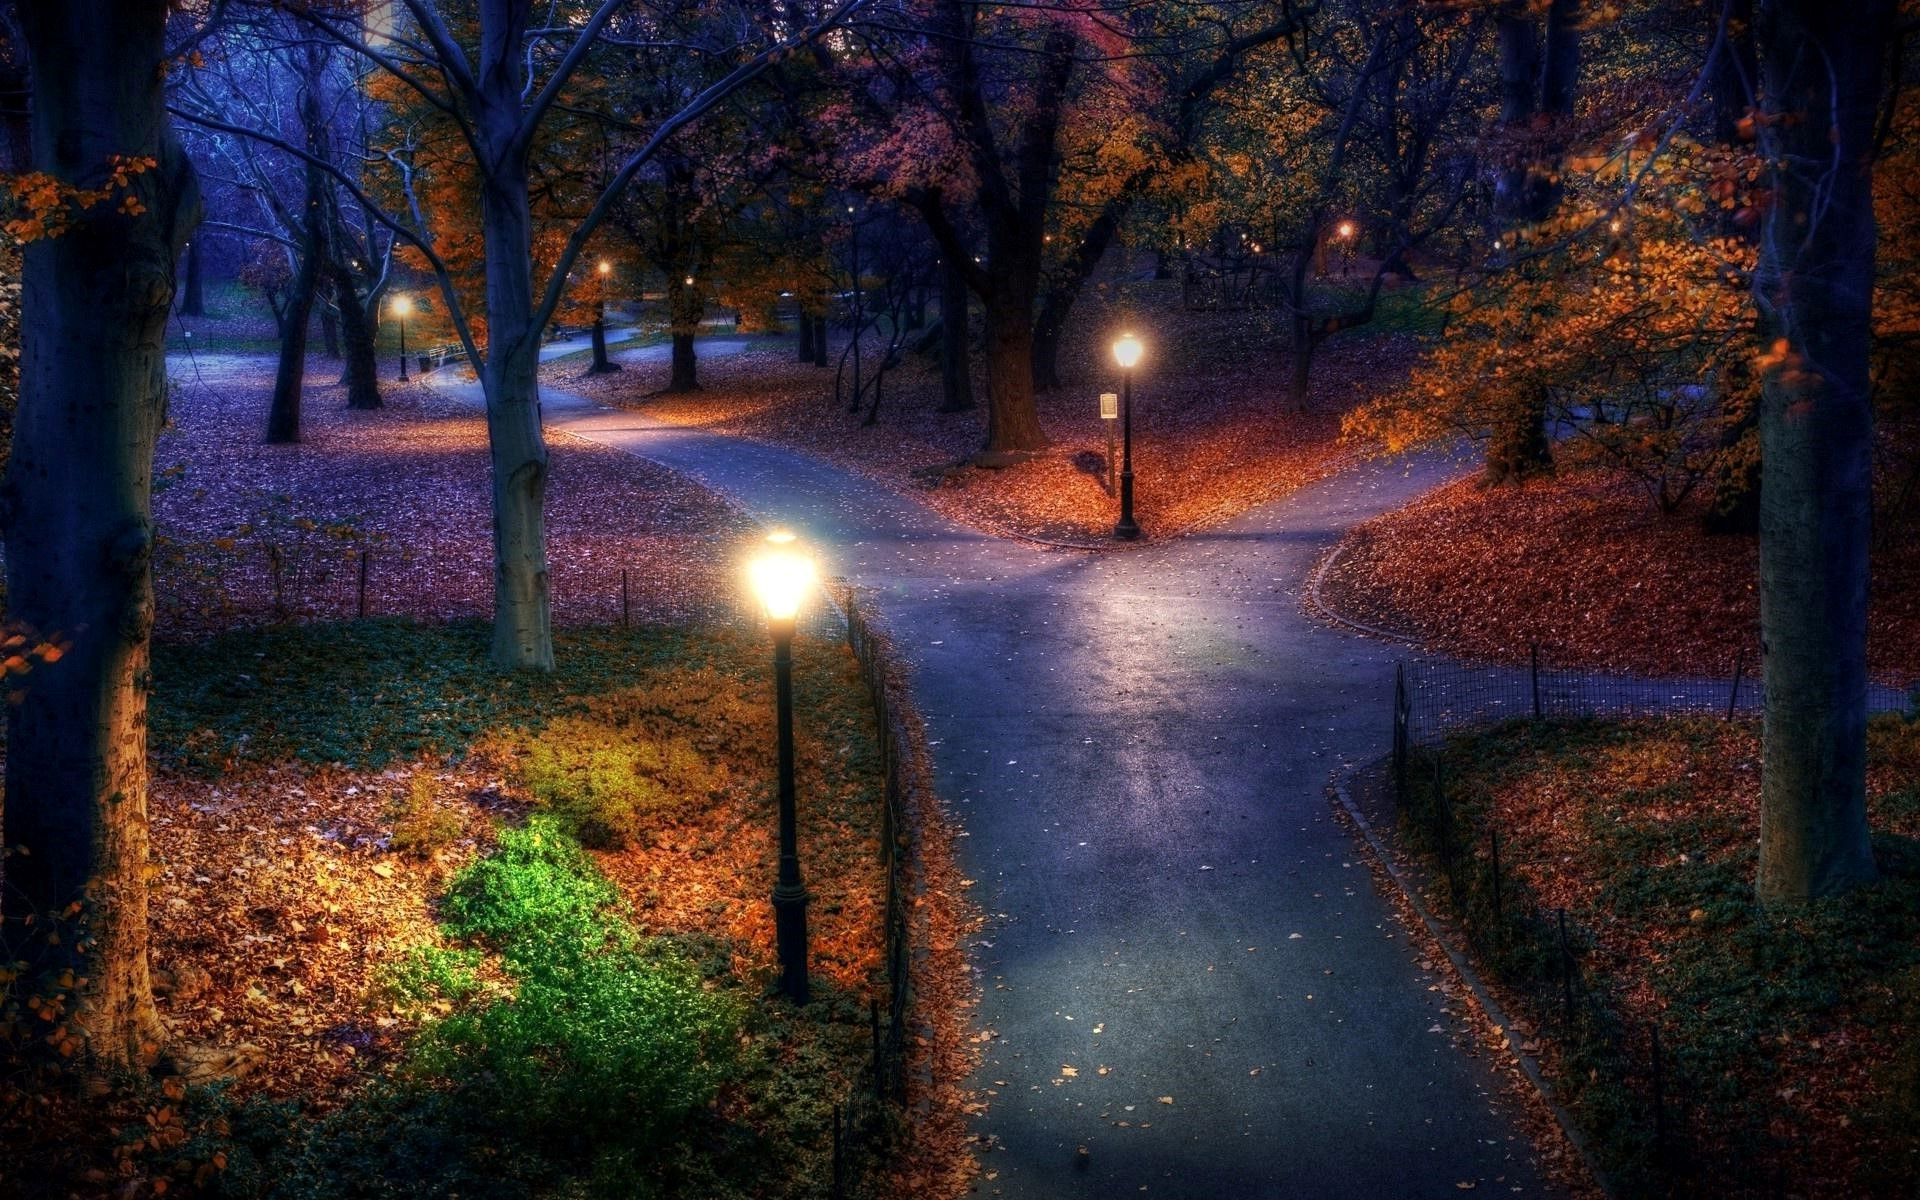 Three Paths In The Park Night Landscape